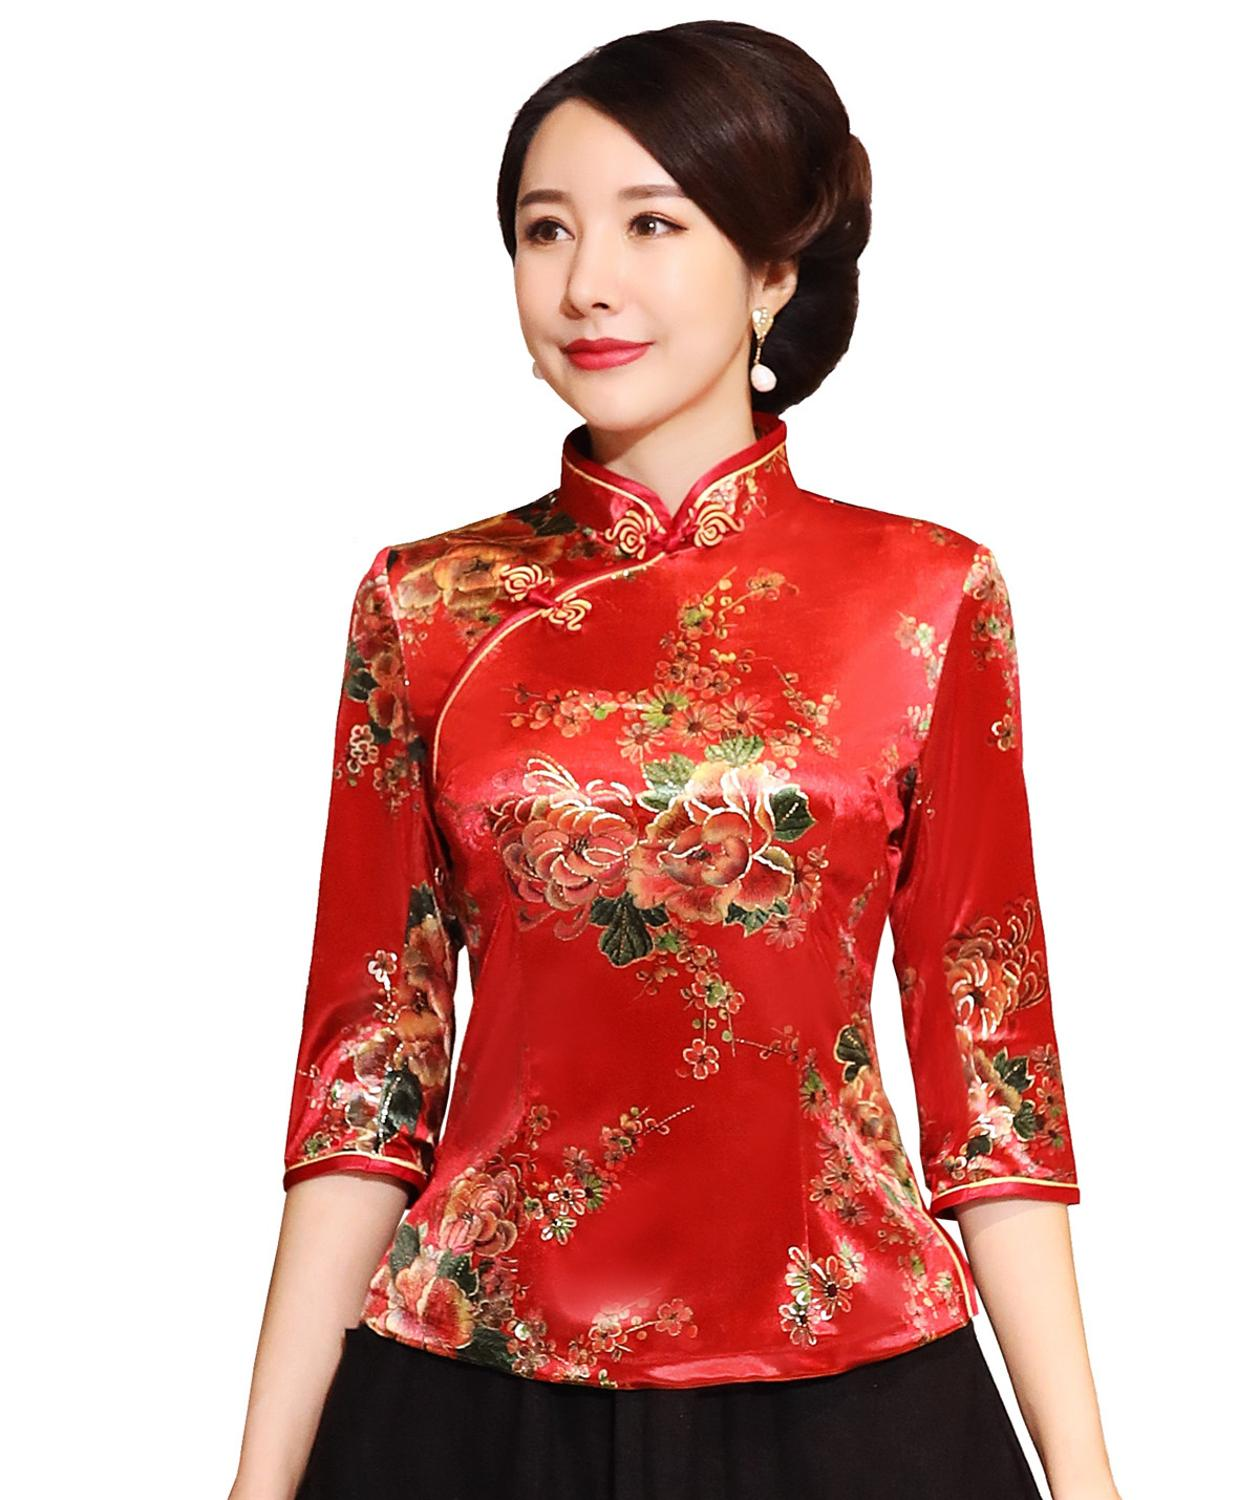 Shanghai Story Chinese Button Woman's Shirt Chinese Traditional Top 3/4 Sleeve Cheongsam Top Velvet Traditional Chinese Blouse